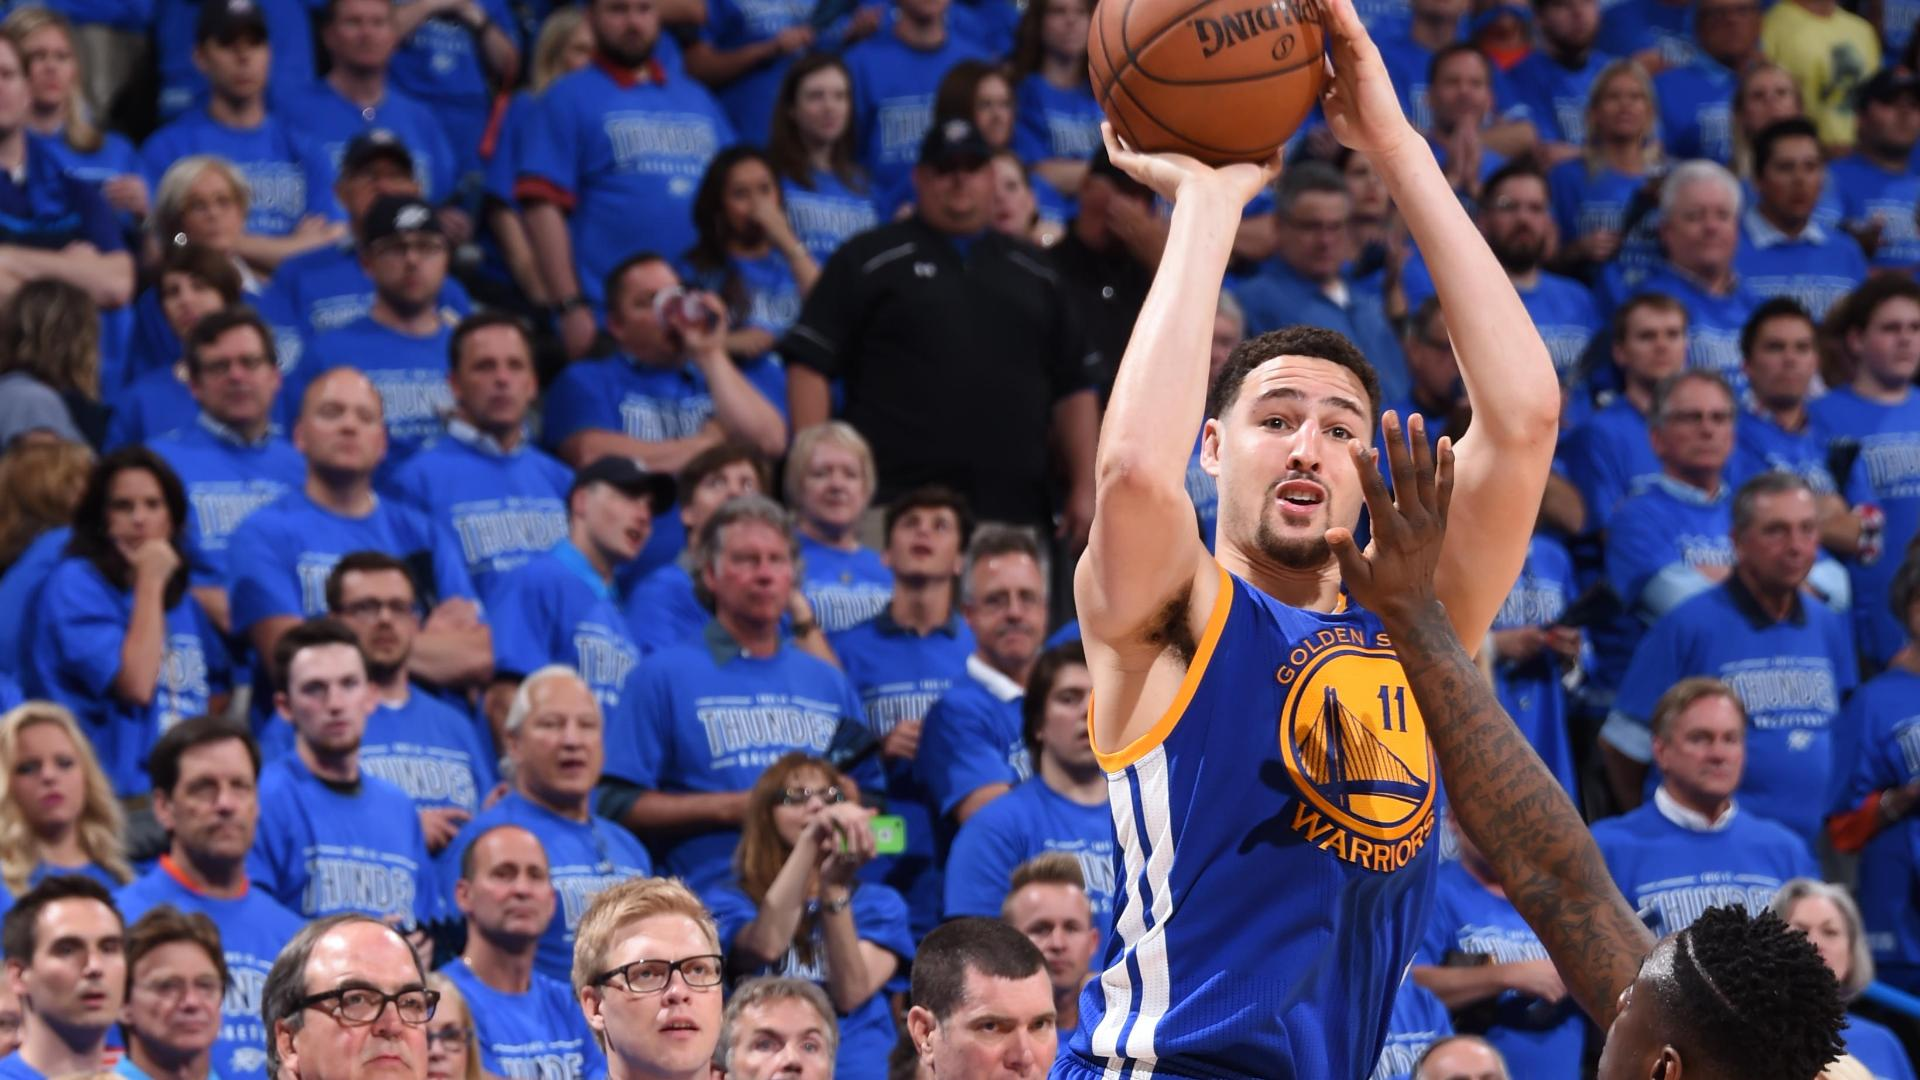 http://a.espncdn.com/media/motion/2016/0529/dm_160528_nba_klay_3228/dm_160528_nba_klay_3228.jpg